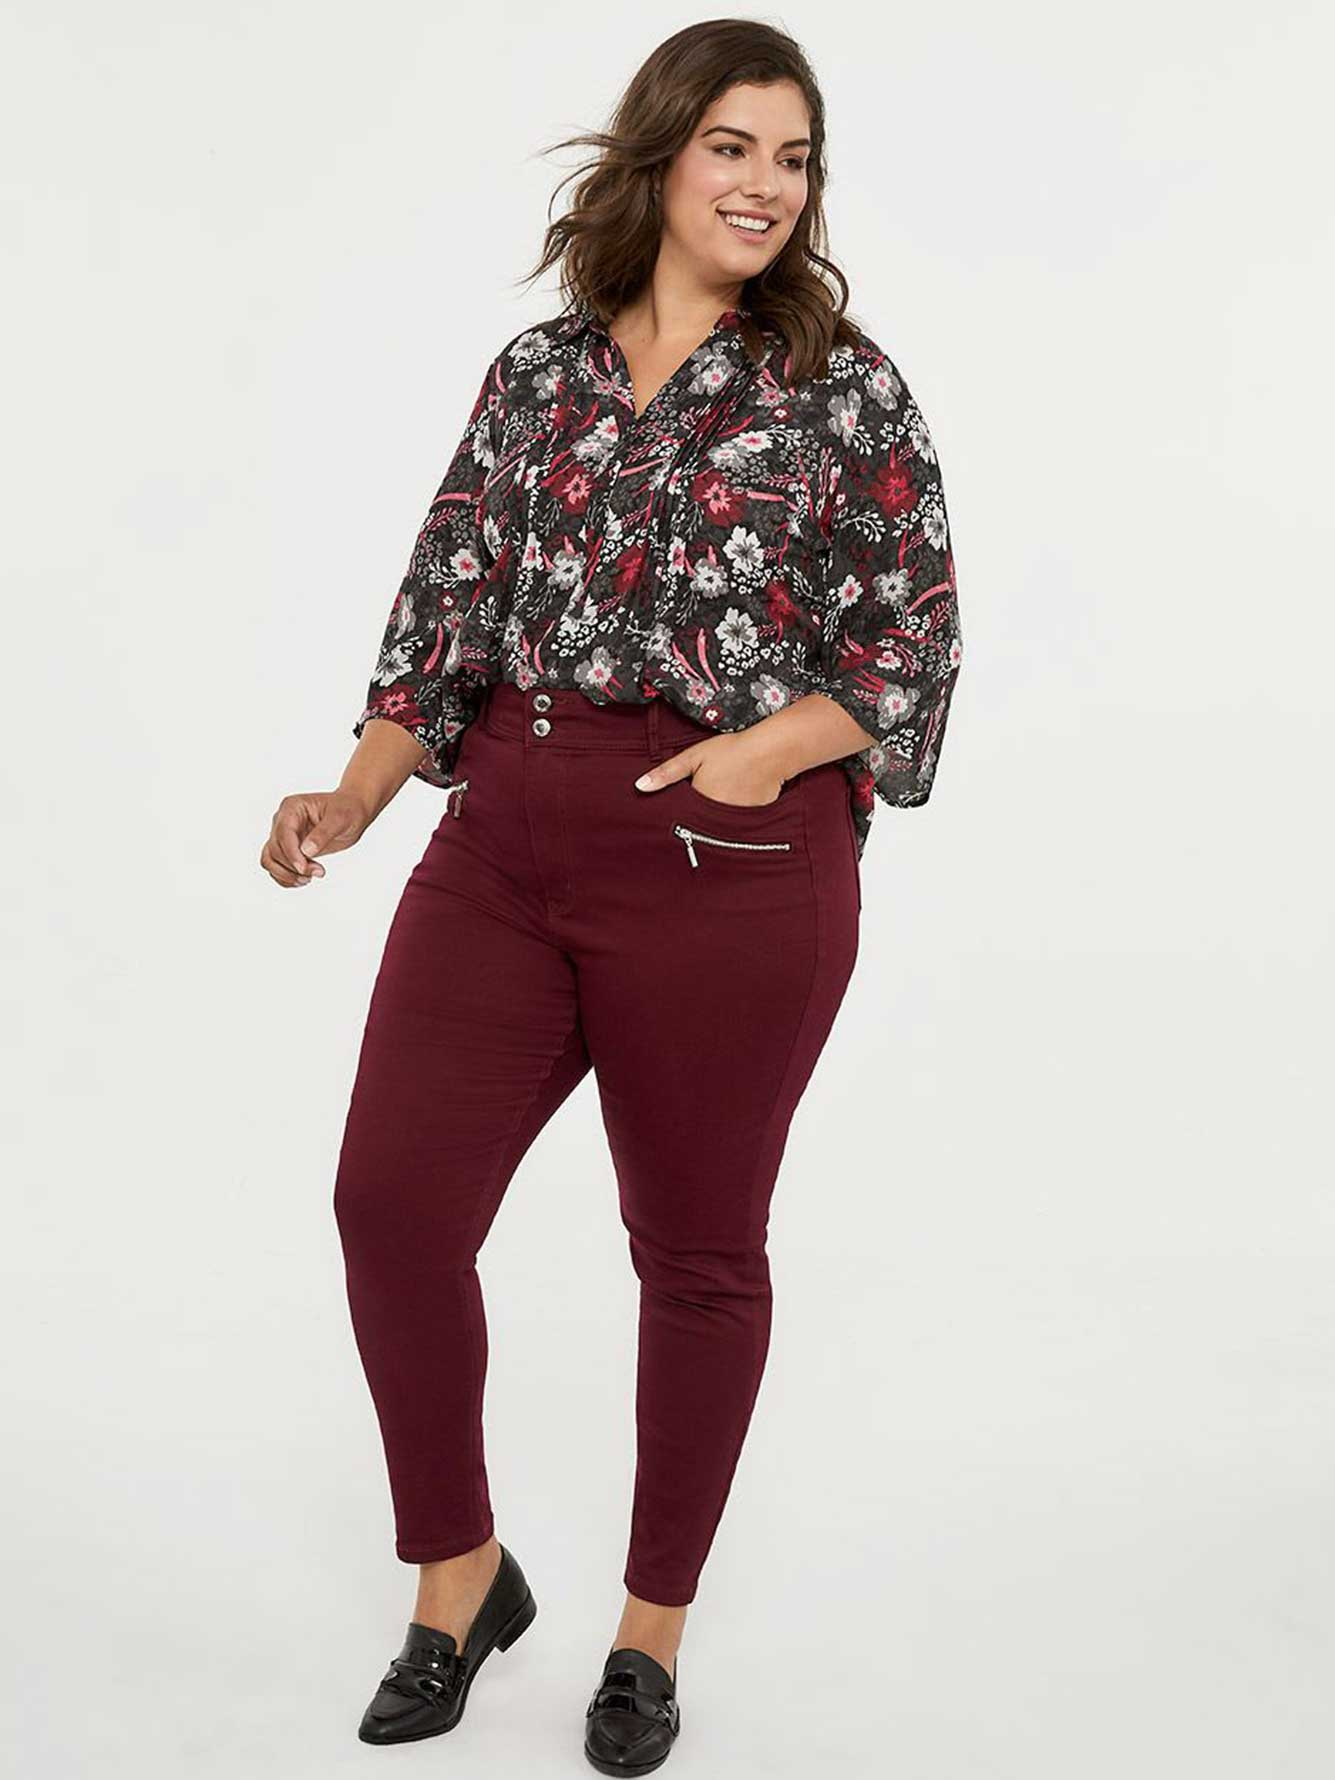 Petite Savvy Fit High Waisted Jean Legging - In Every Story